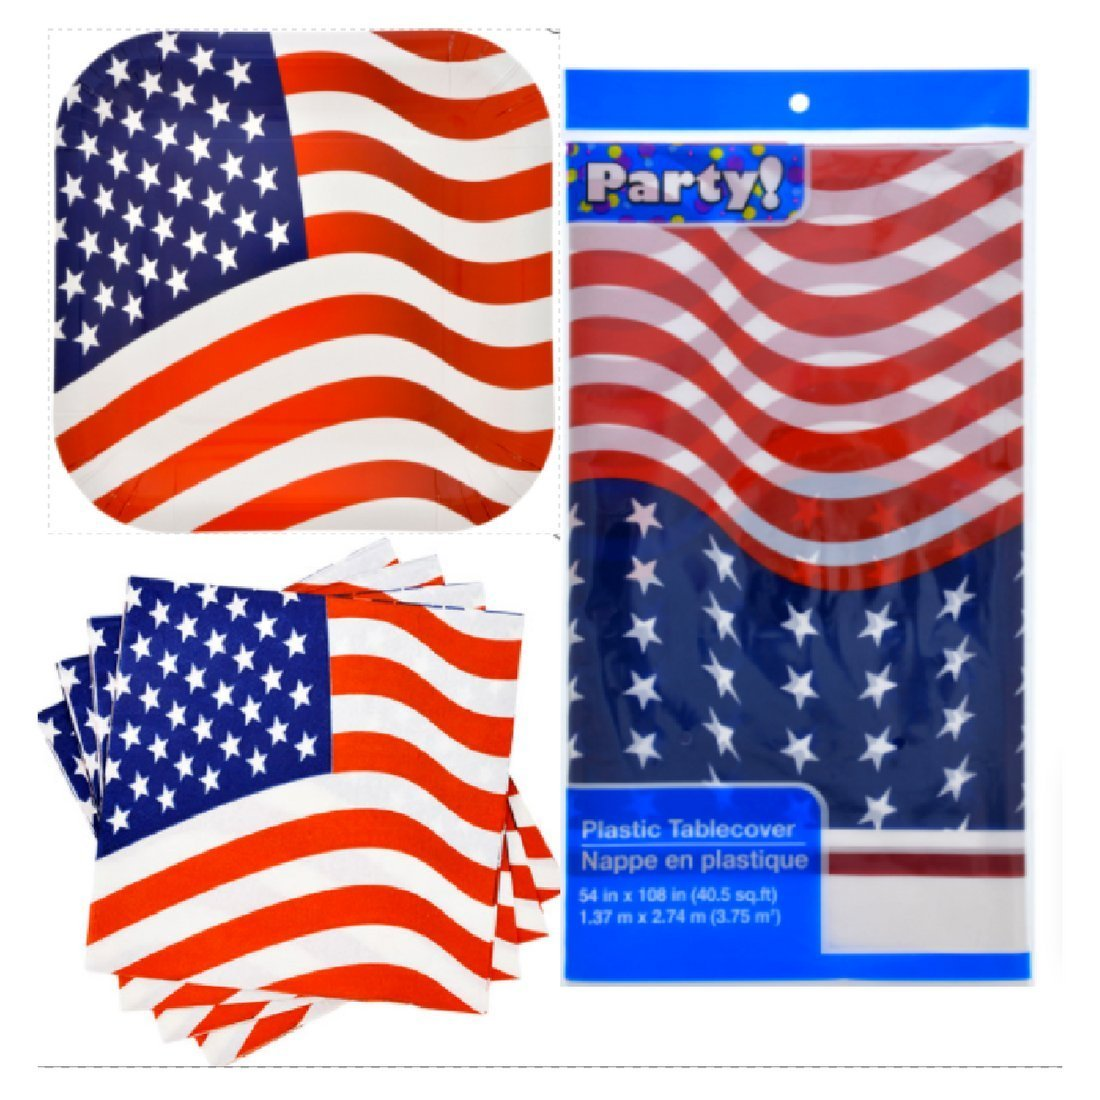 American Flag Party Set 2 Pack of Plates (28) 2 Pack Of Flag Napkins (40) 2 Rectangle Flag Table Covers 54 in x 108 in (40.5 sq,ft)